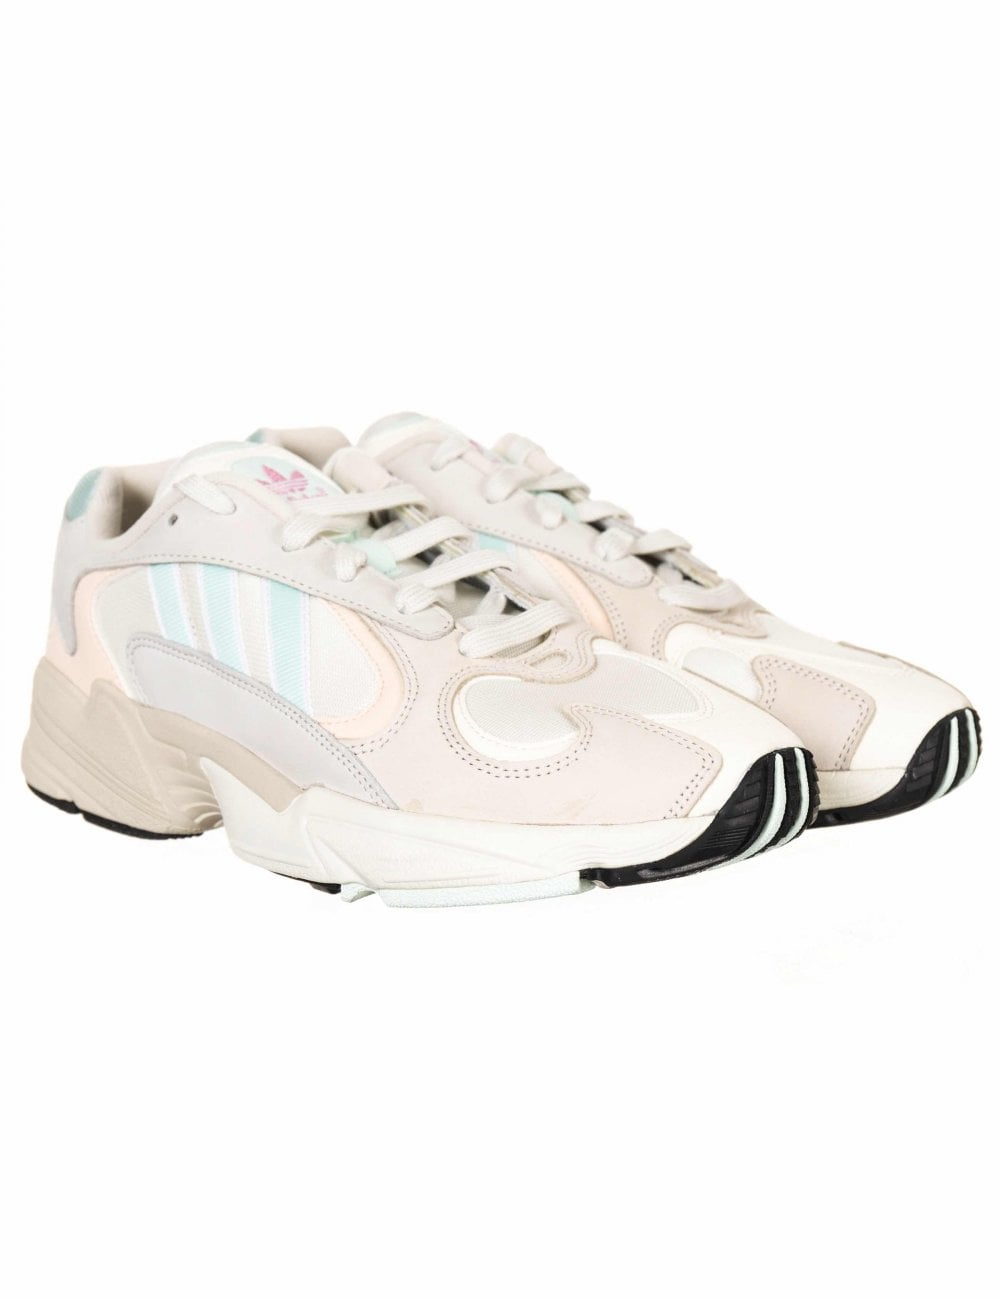 c12d41fe Adidas Originals Yung-1 Trainers - Off White/Ice Mint - Footwear ...